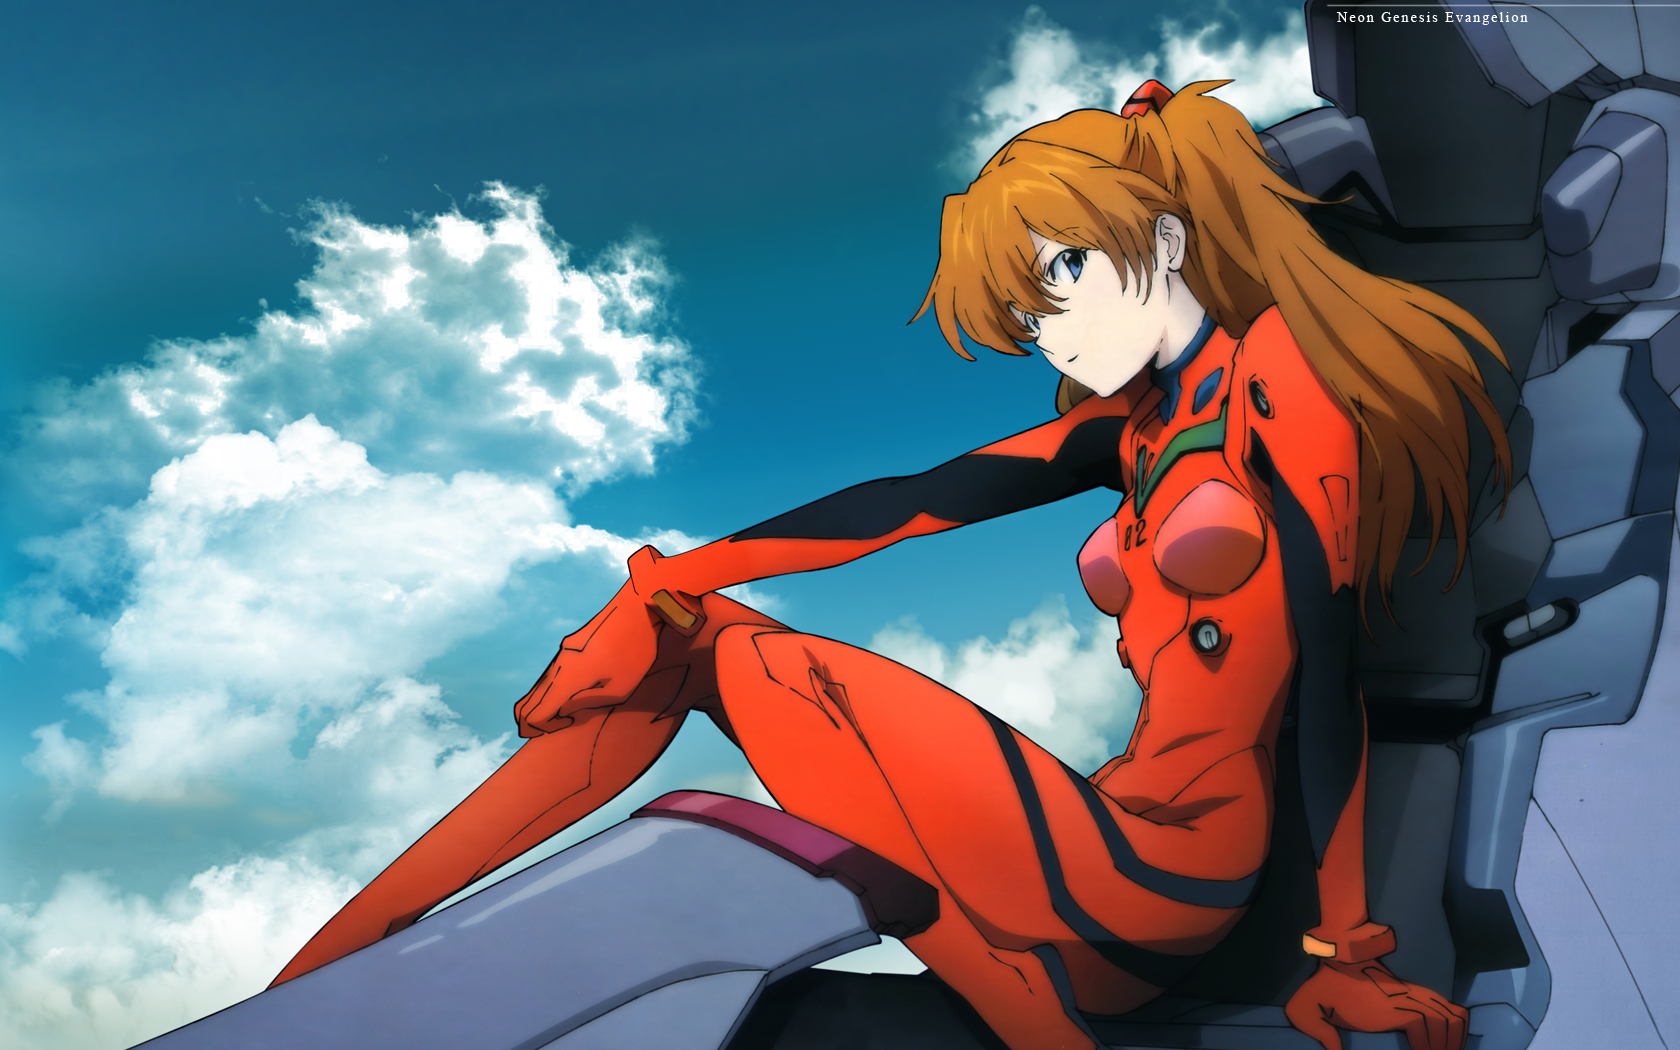 Evangelion 2 0 You Can Not Advance Wallpaper And Background Image 1680x1050 Id 310510 Wallpaper Abyss